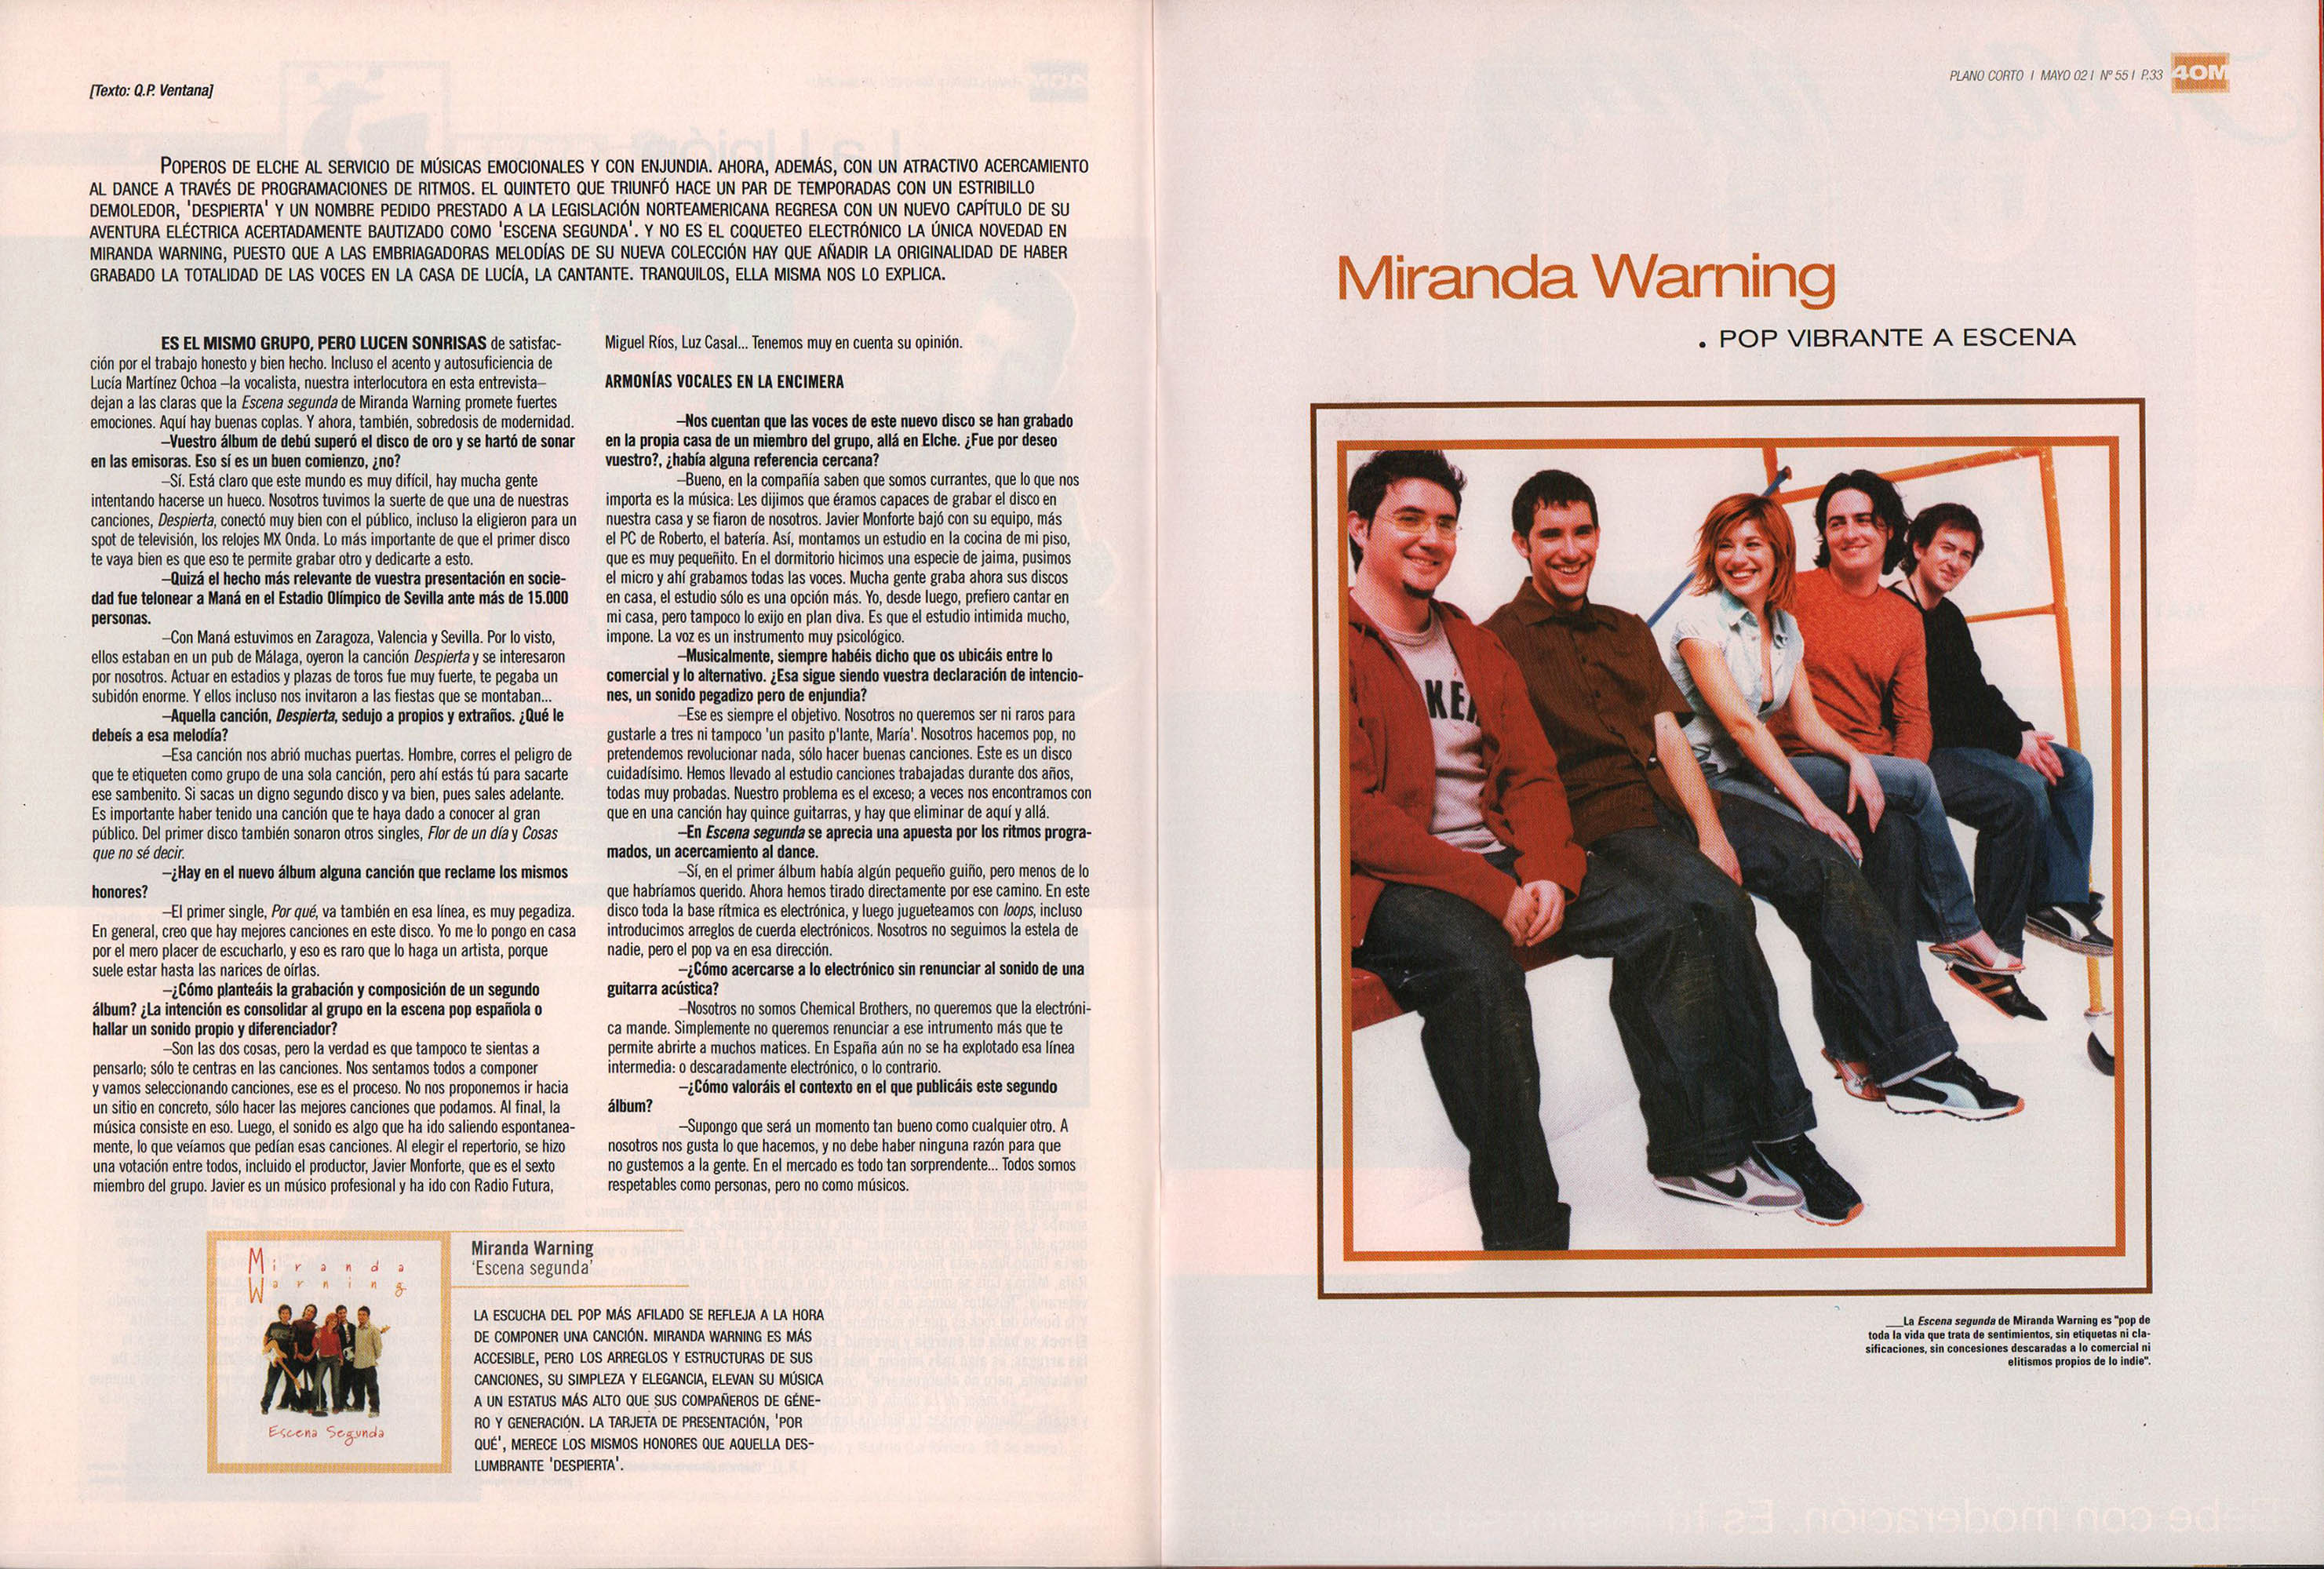 Miranda Warning, pop vibrante a escena - Escena segunda | 40 Magazine | may 2002